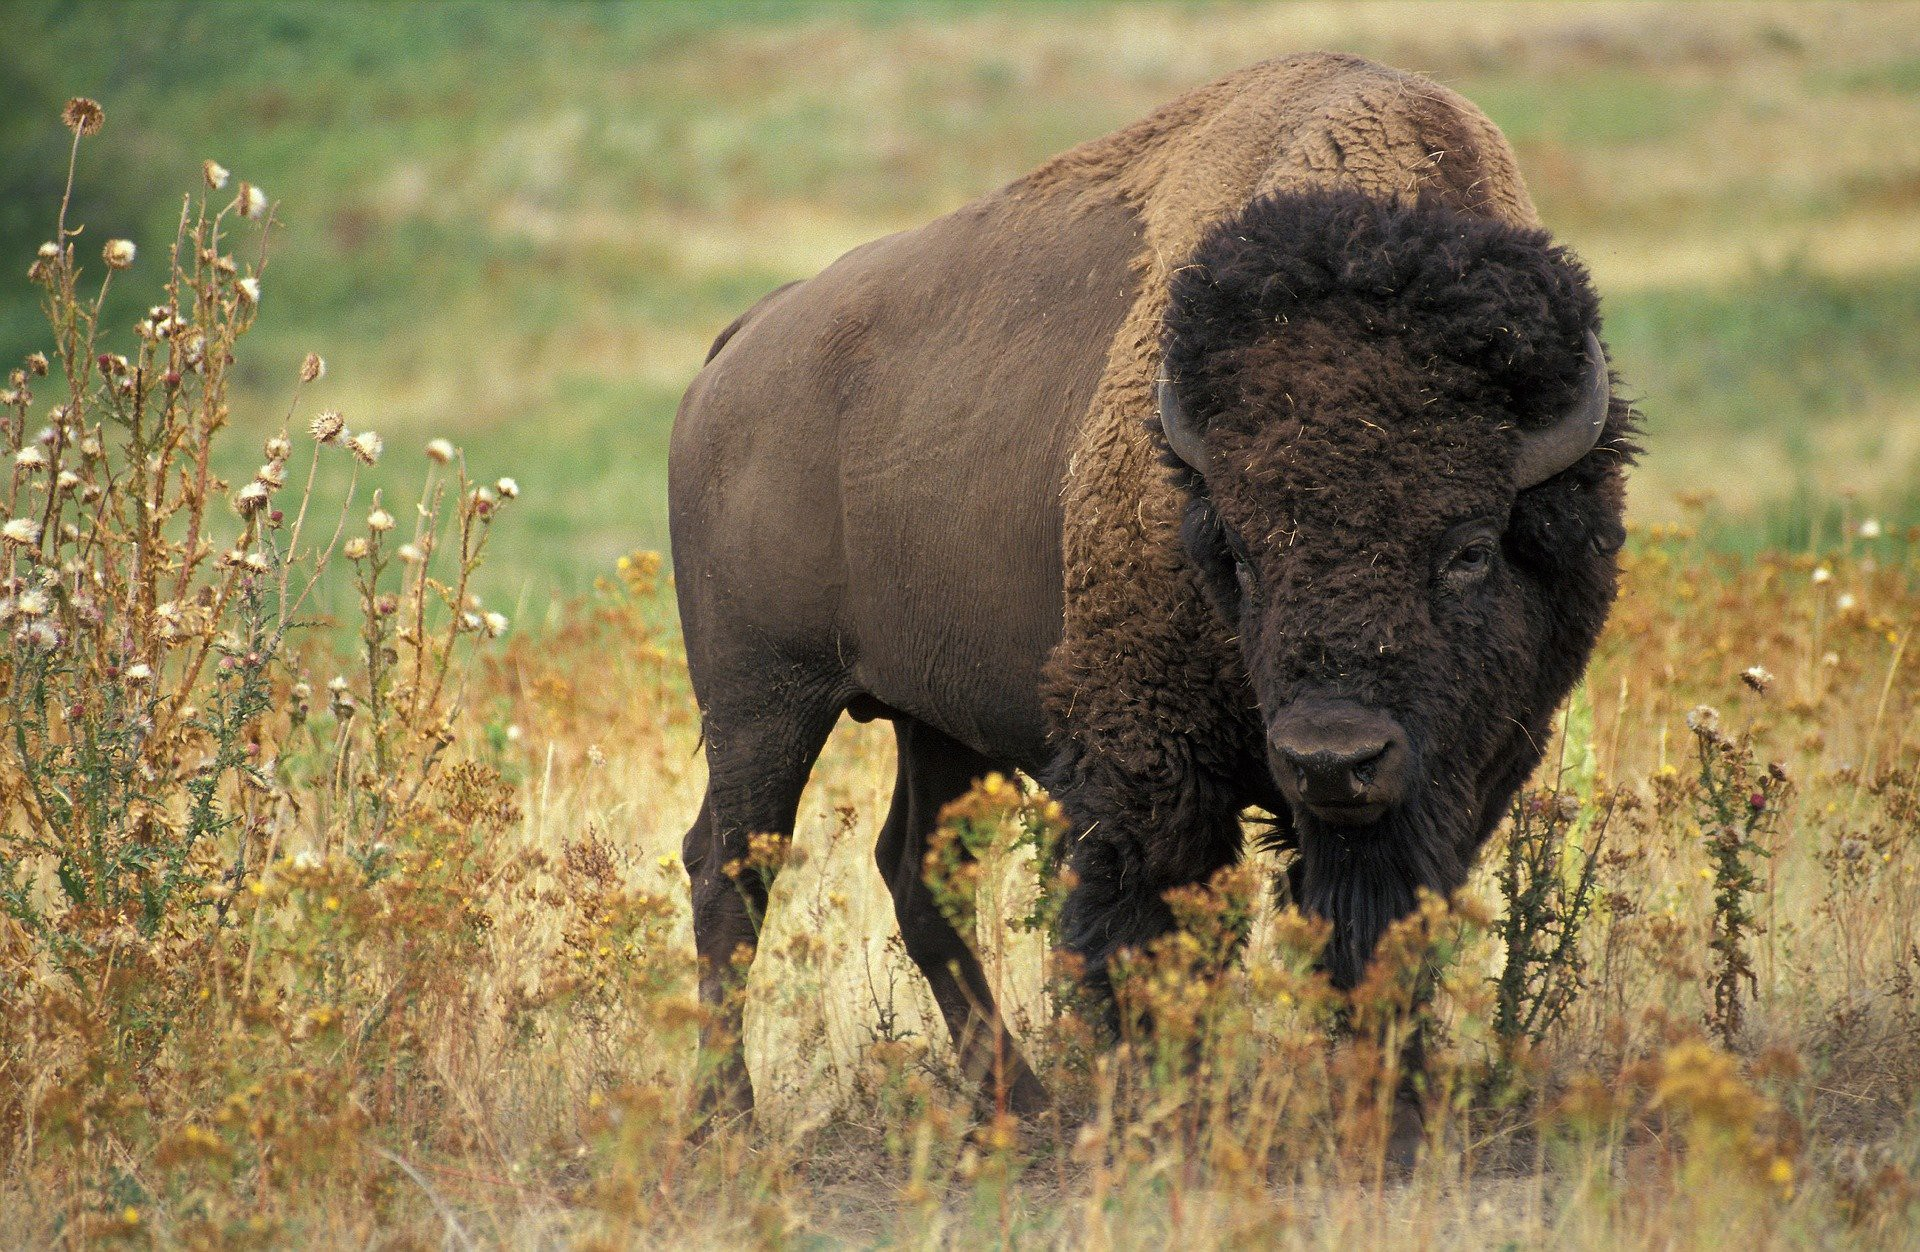 American Bison in the wild